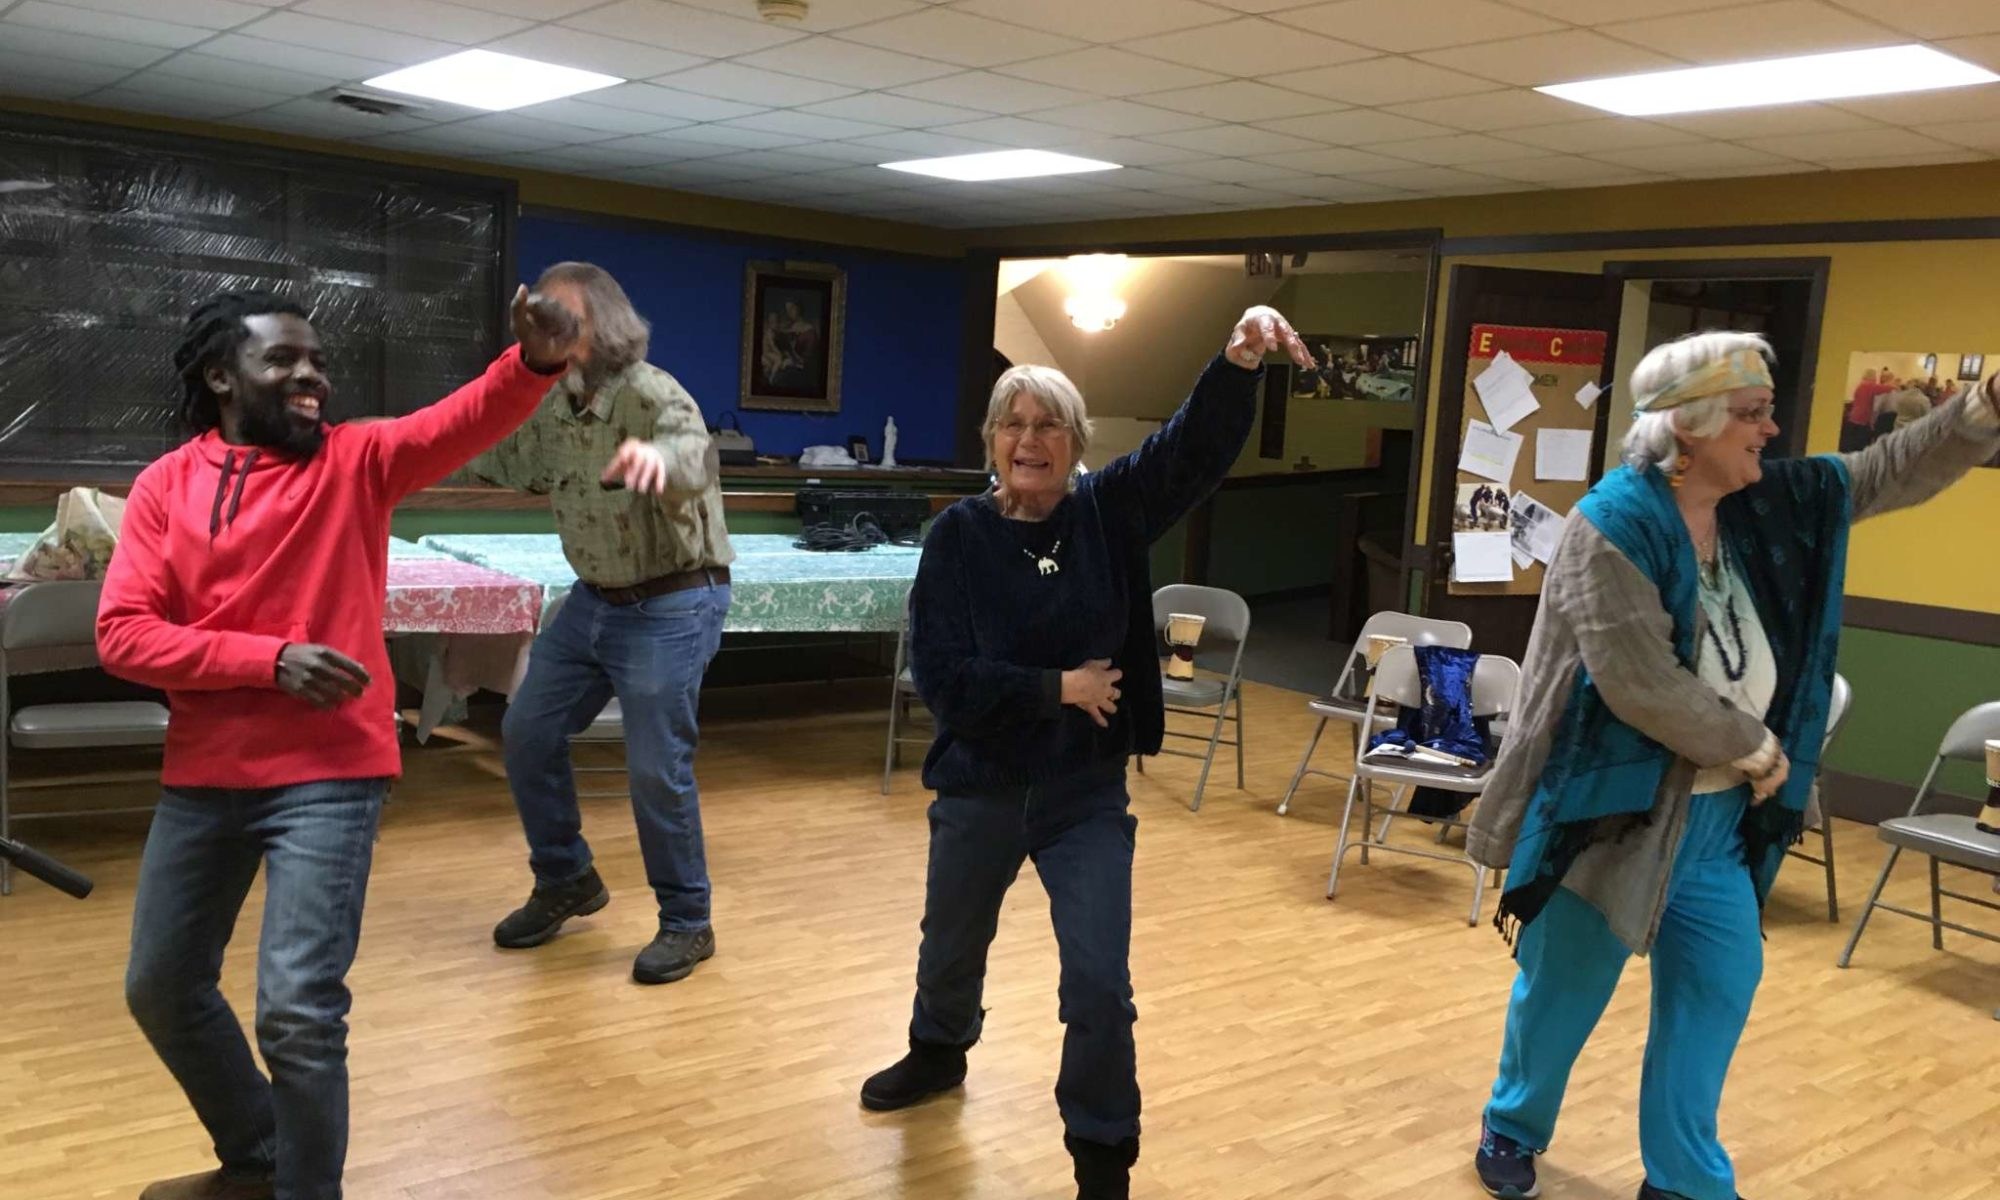 African Dance and Drumming Workshop for Adults FRI 1/18 7PM